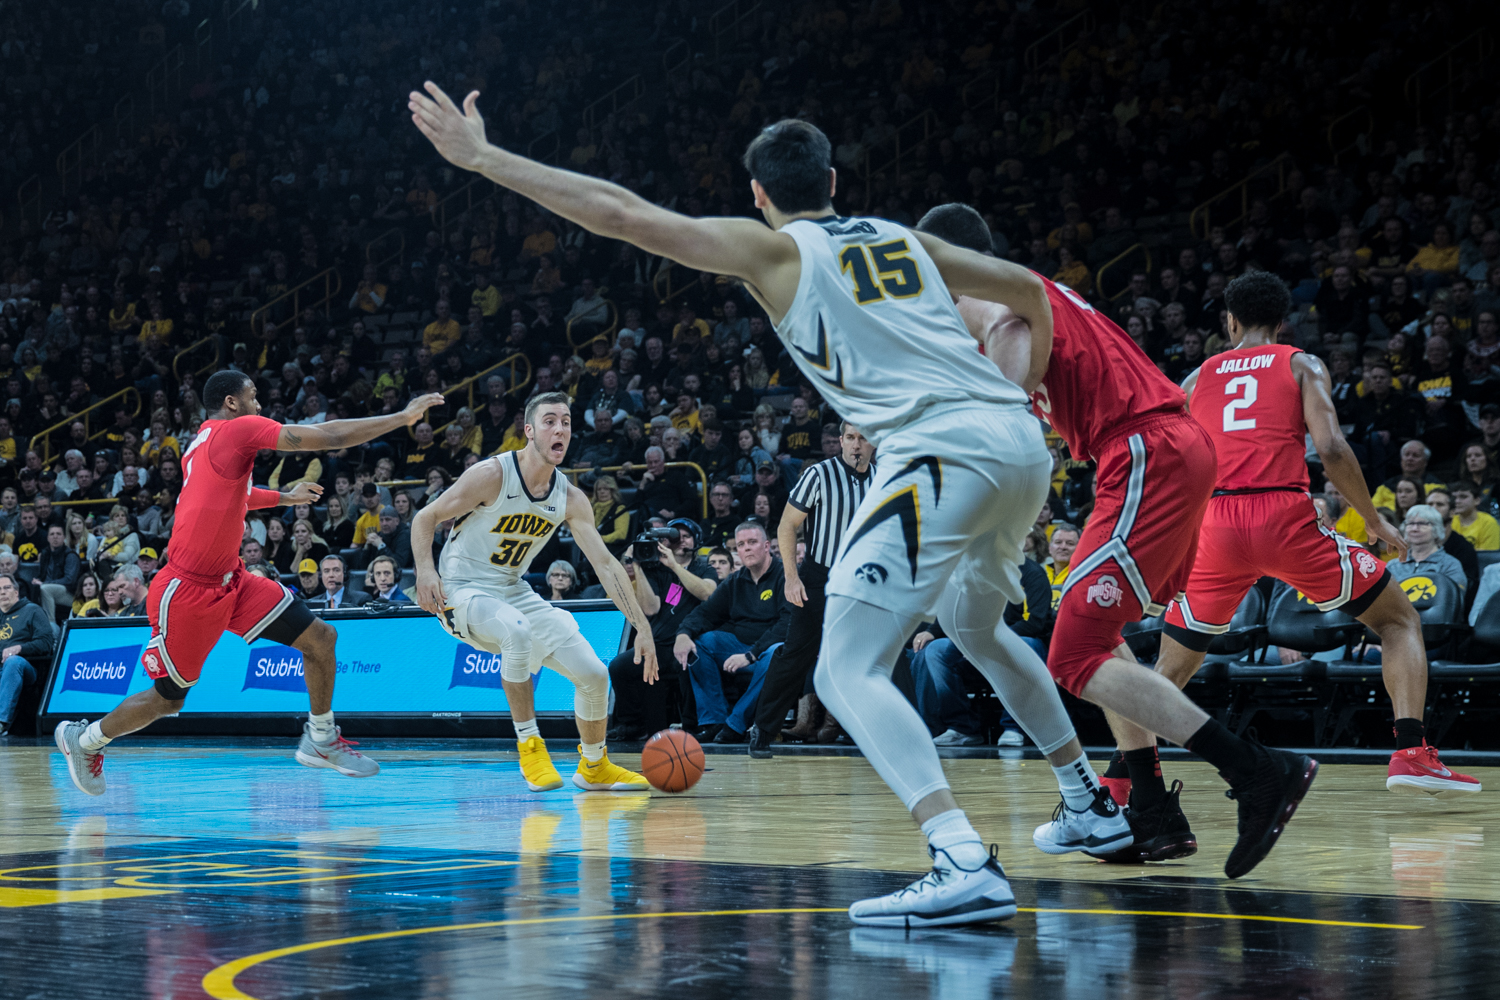 Iowa+guard+Connor+McCaffery+surveys+the+defense+during+a+men%27s+basketball+matchup+between+Ohio+State+and+Iowa+at+Carver-Hawkeye+Arena+on+Saturday%2C+January+12%2C+2019.+The+Hawkeyes+defeated+the+Buckeyes%2C+72-62.